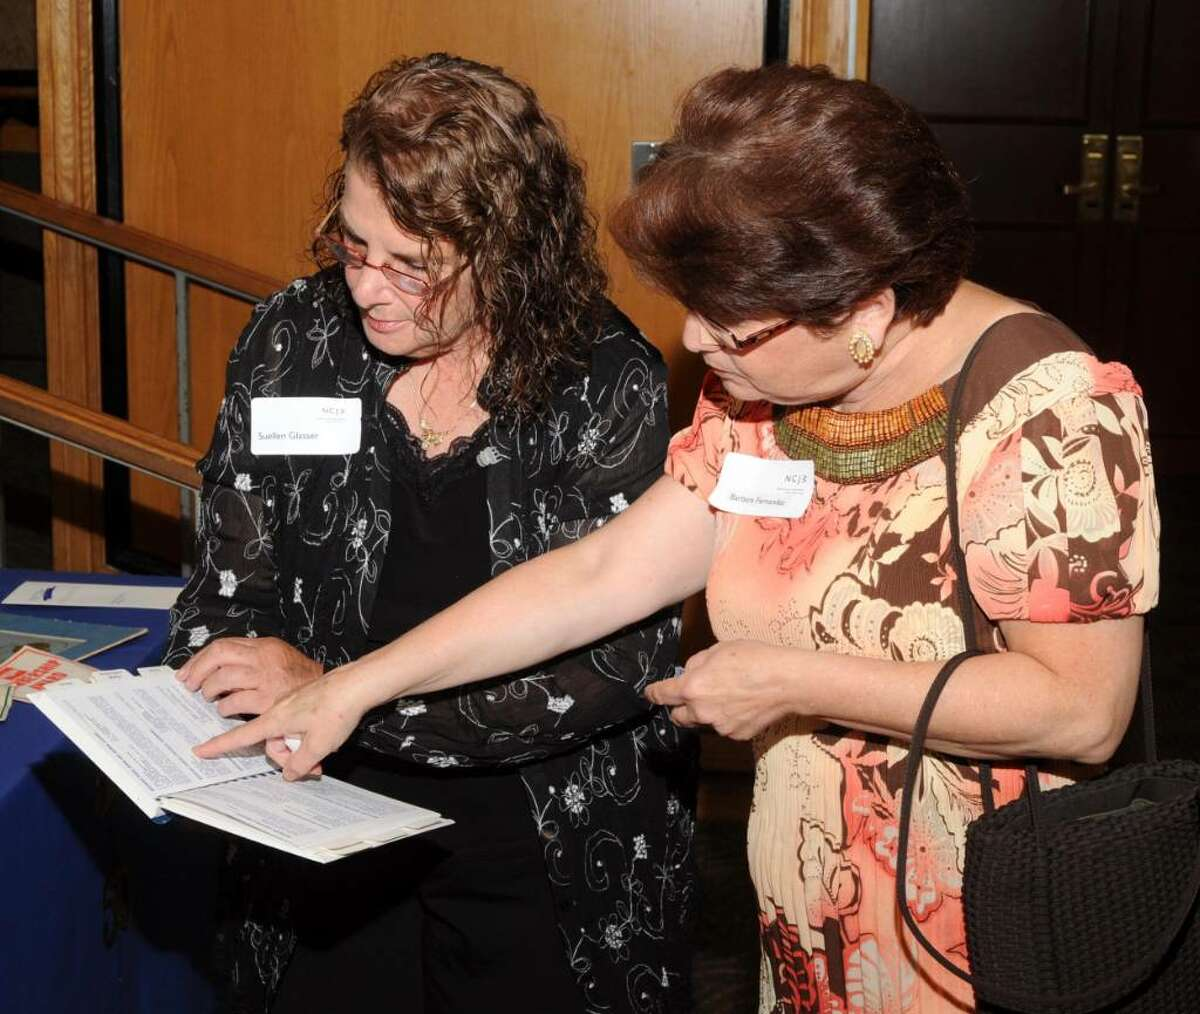 Suellen Glasser. left,and Barbara Fernandes, right, both of Danbury, CT, look at the